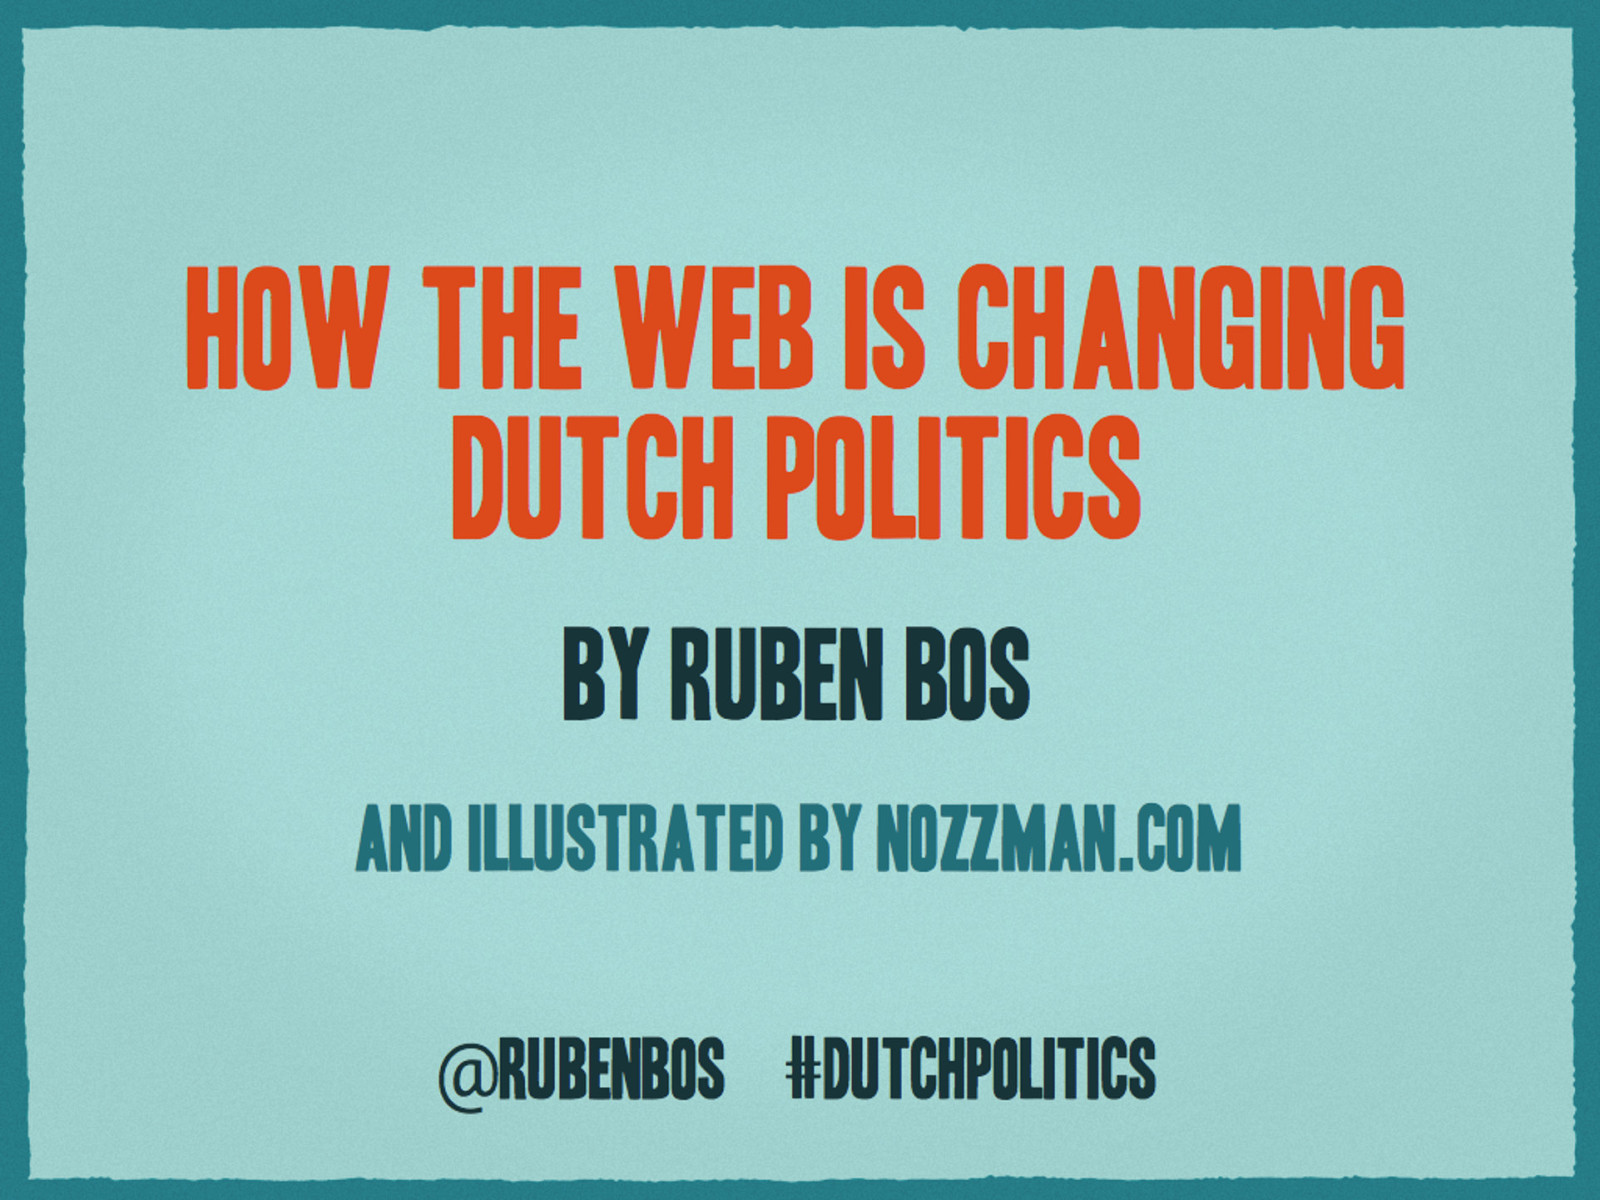 How the web is changing Dutch politics